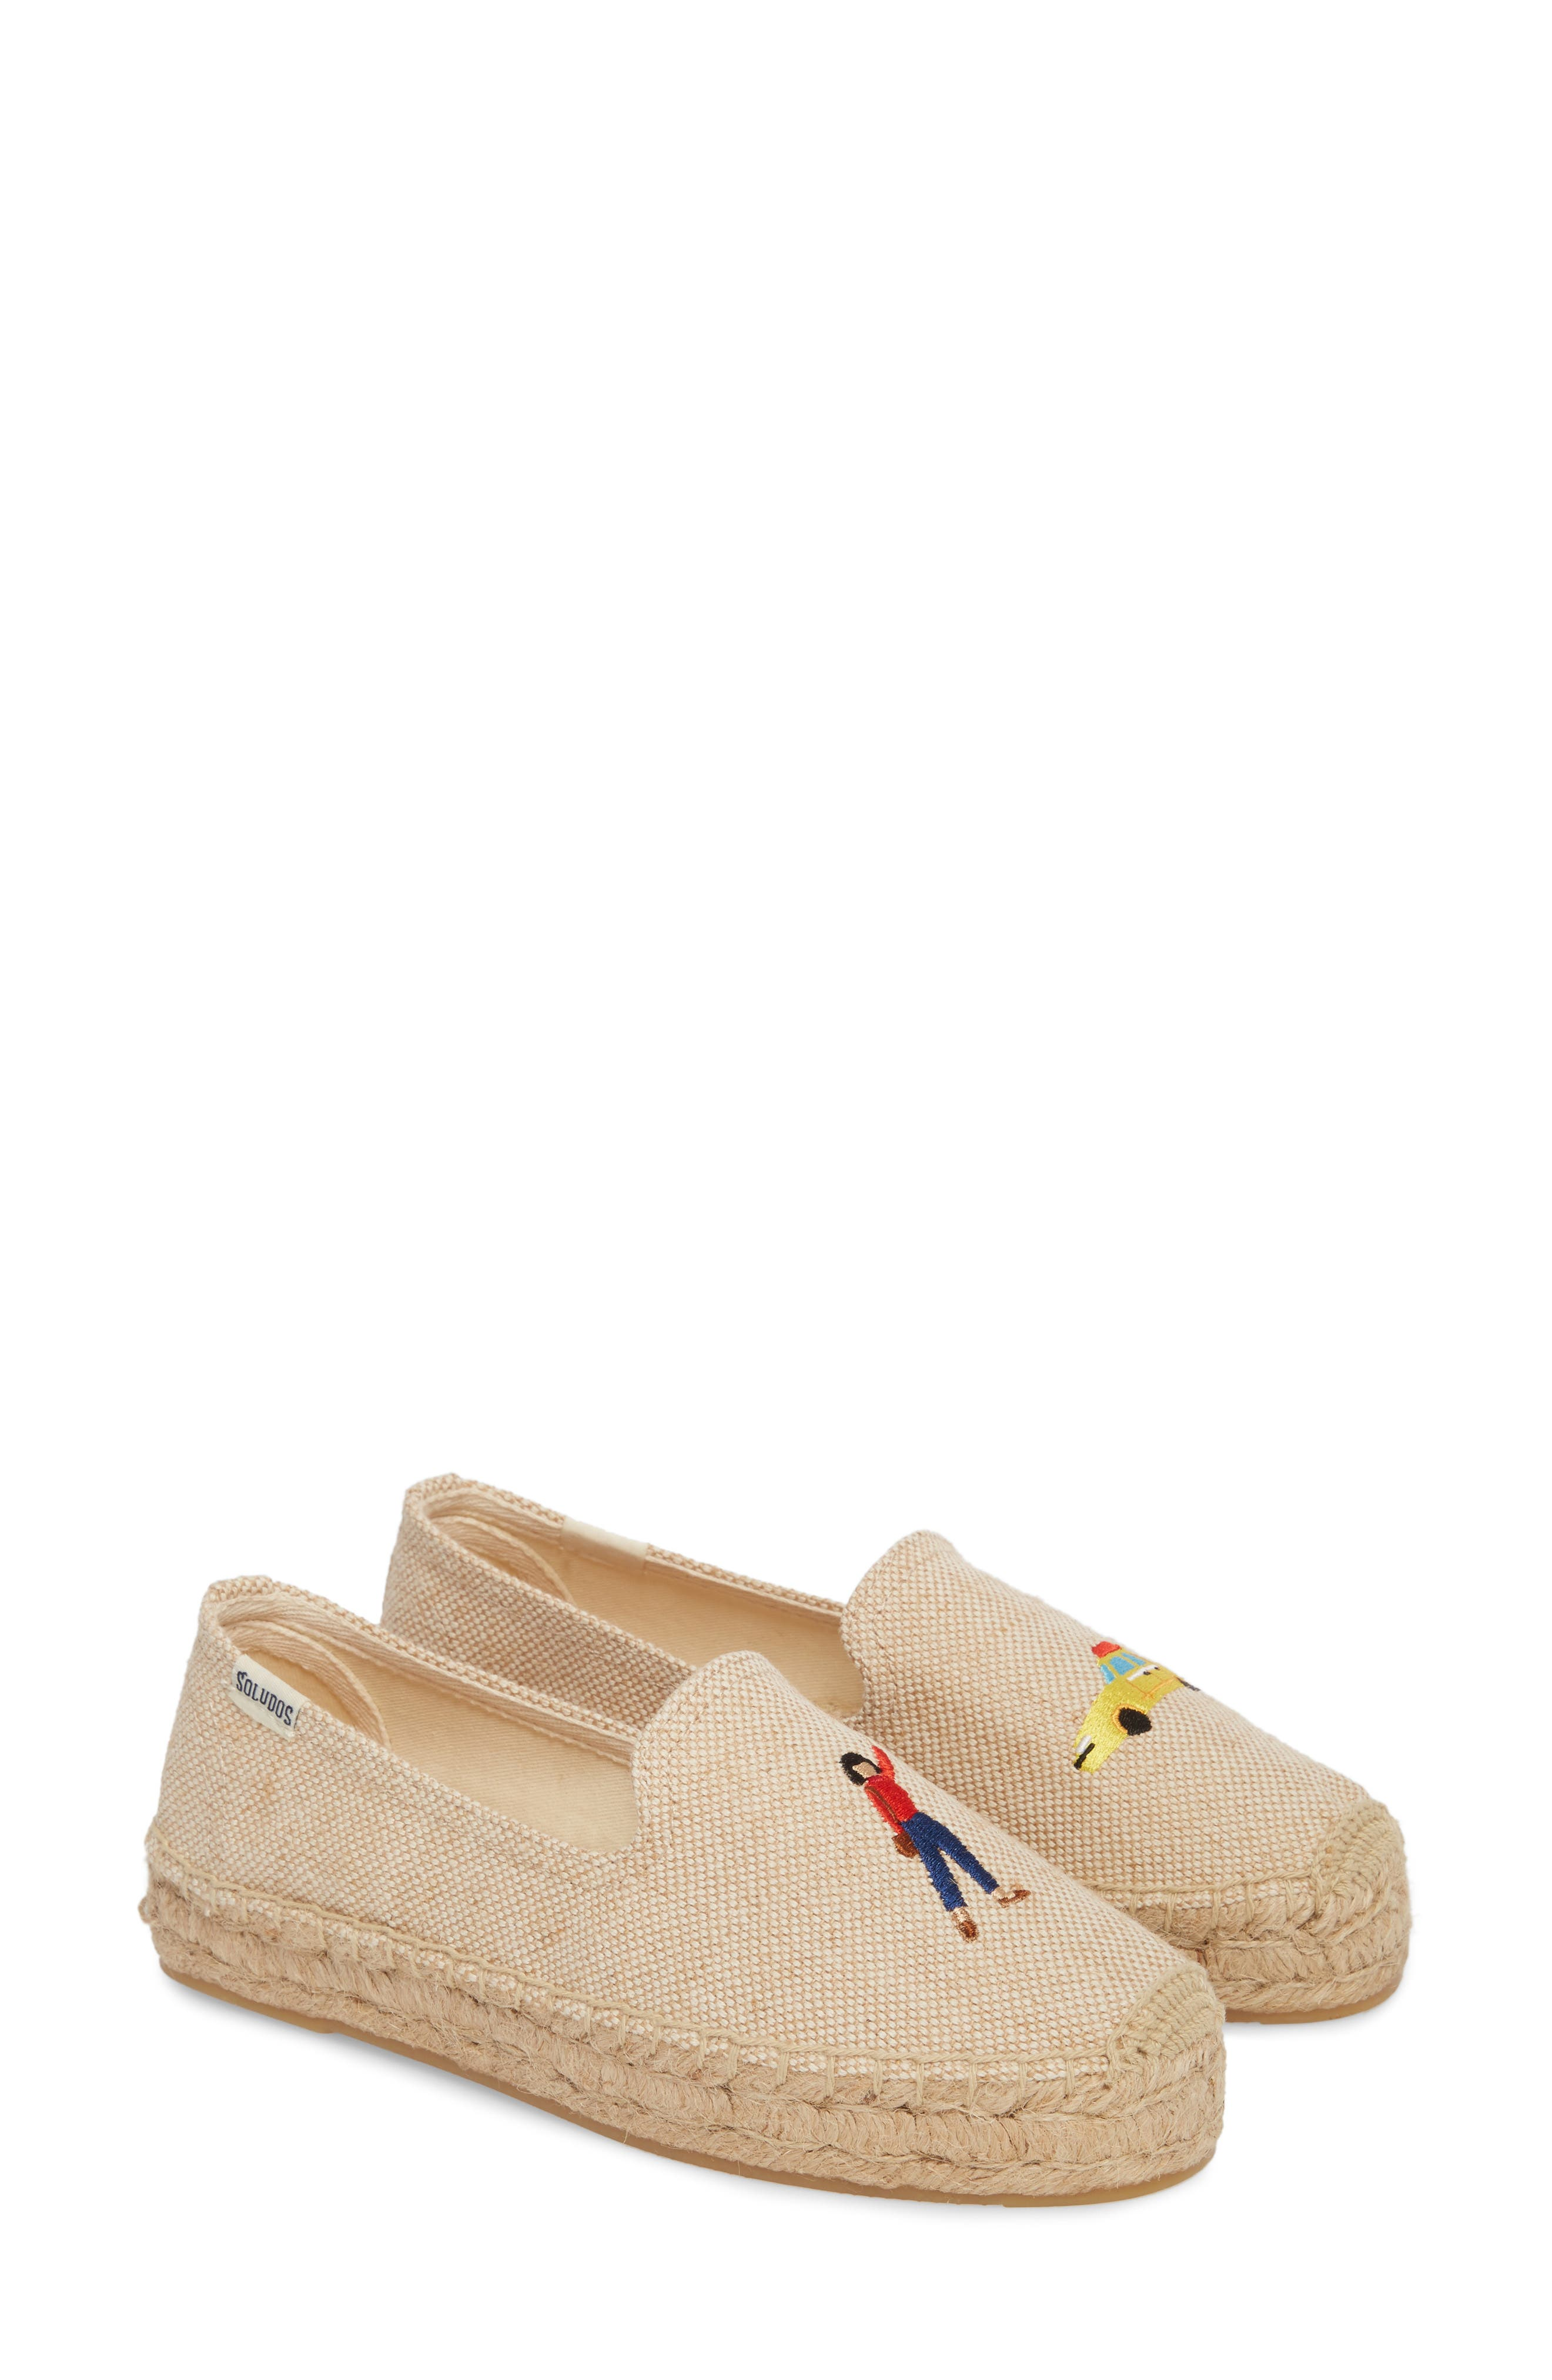 Taxi Embroidered Platform Espadrille,                             Alternate thumbnail 2, color,                             Natural Canvas